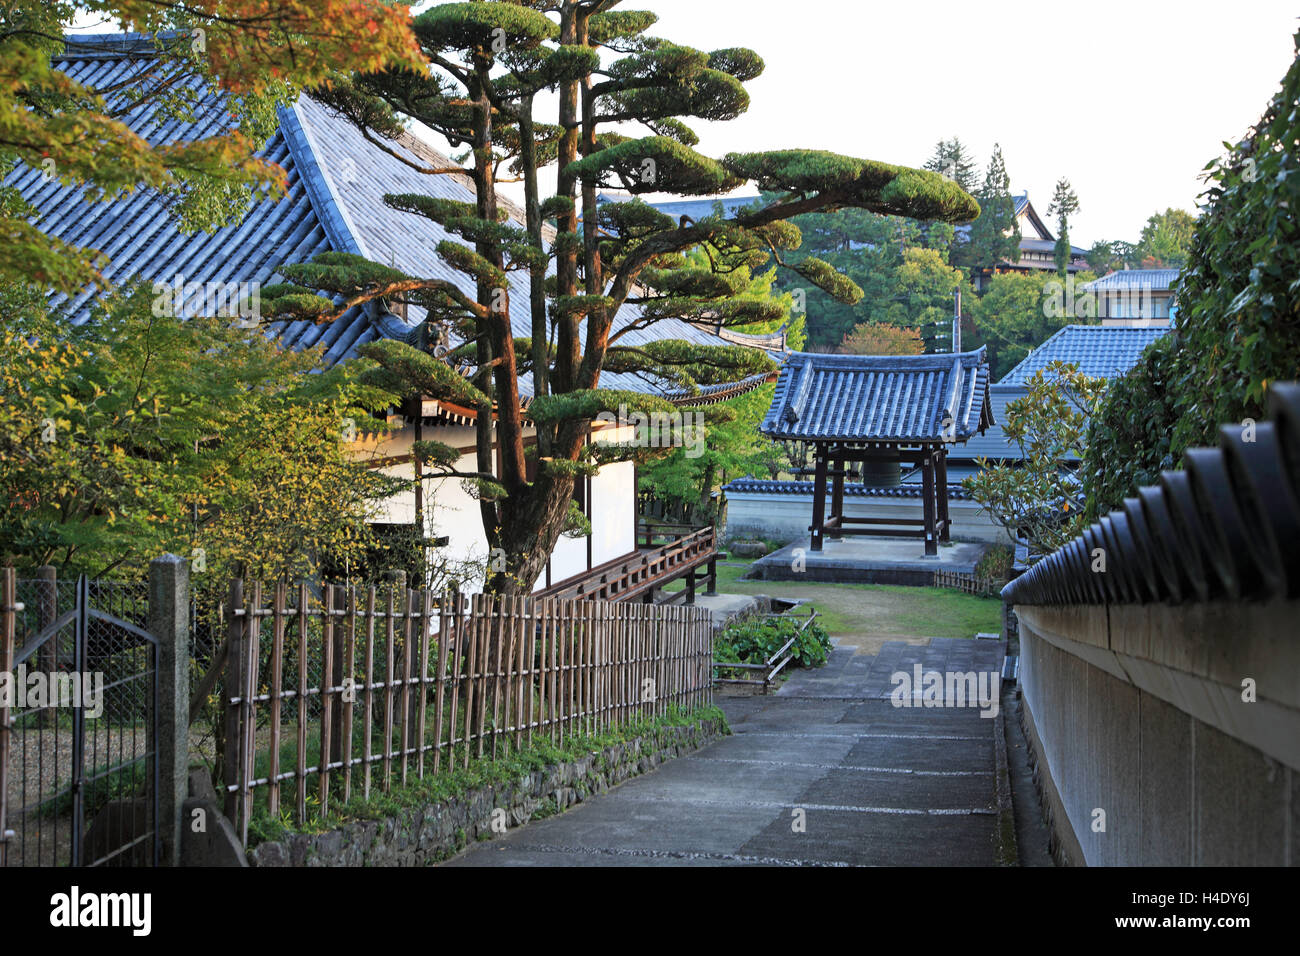 Japan, Nara, Kofukuji Temple, UNESCO World Heritage - Stock Image